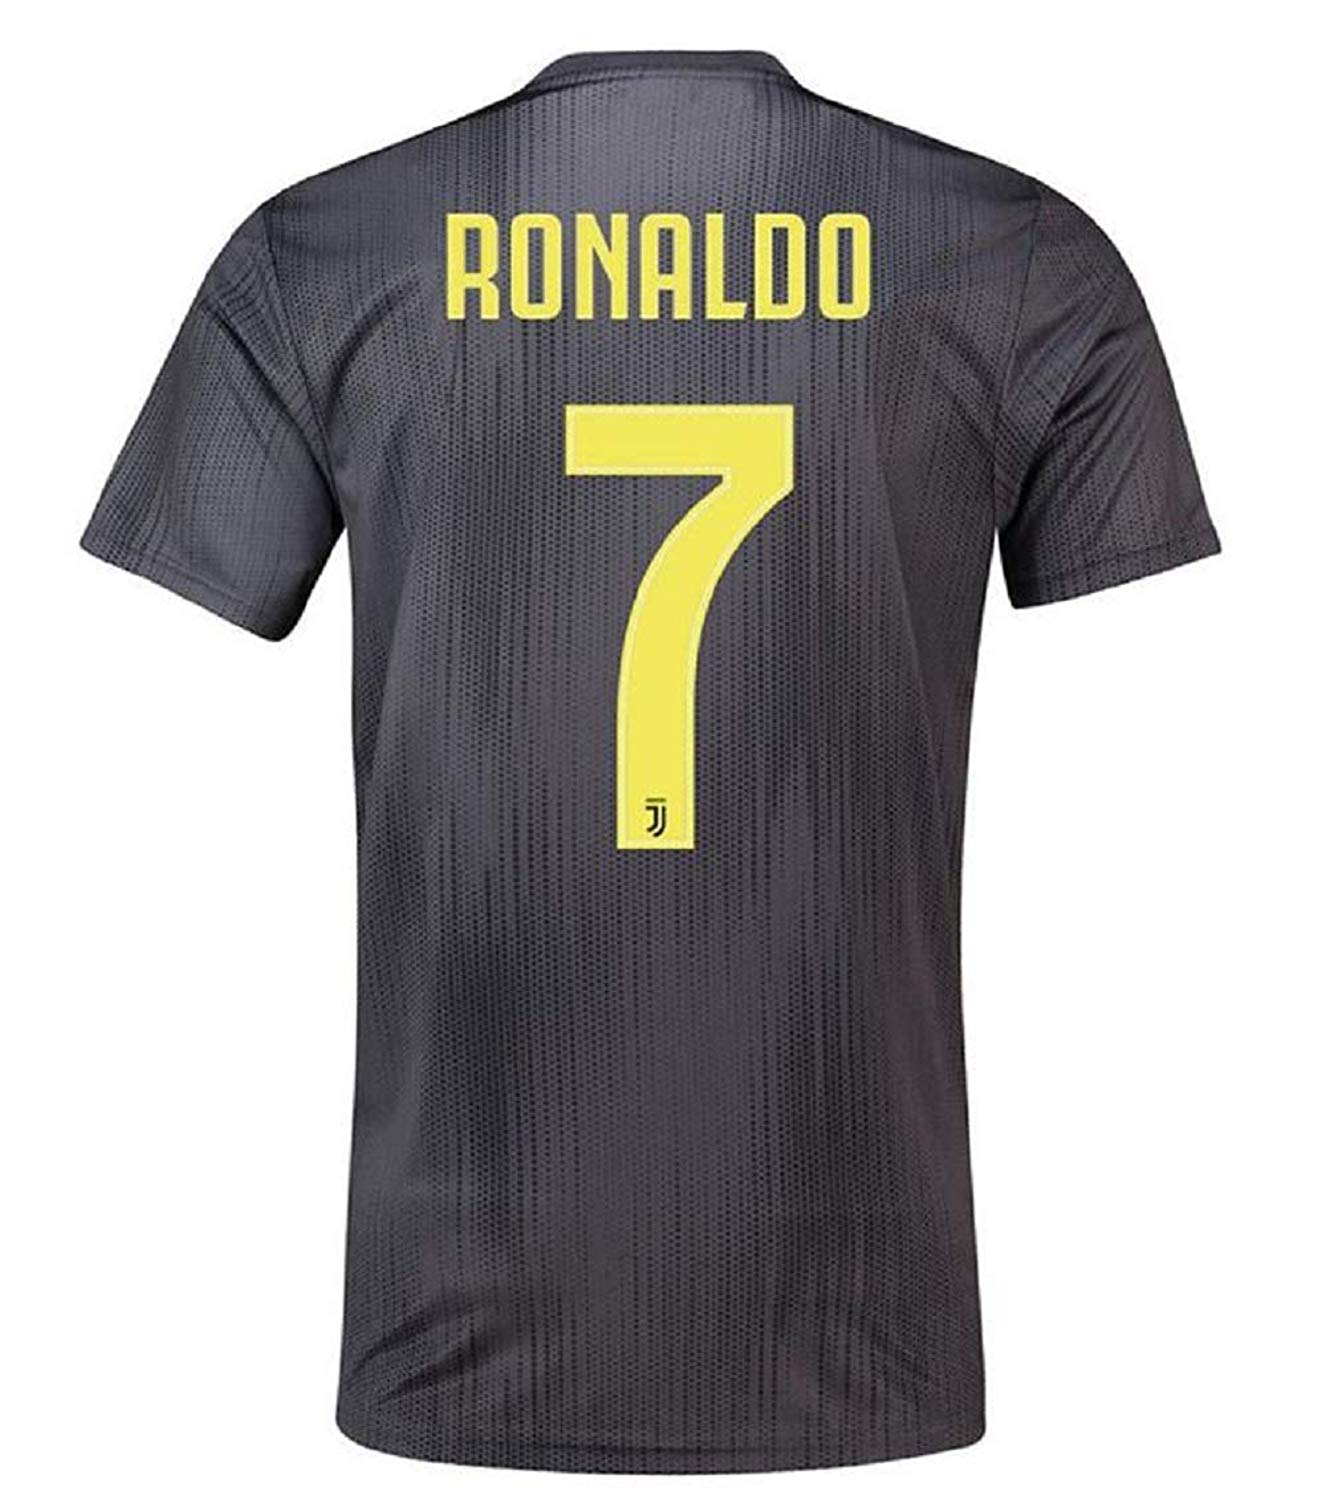 875b9f307 Get Quotations · Lakivde Men s Ronaldo New Away Jerseys 18-19 Juventus  7  Football Jersey Soccer Jersey